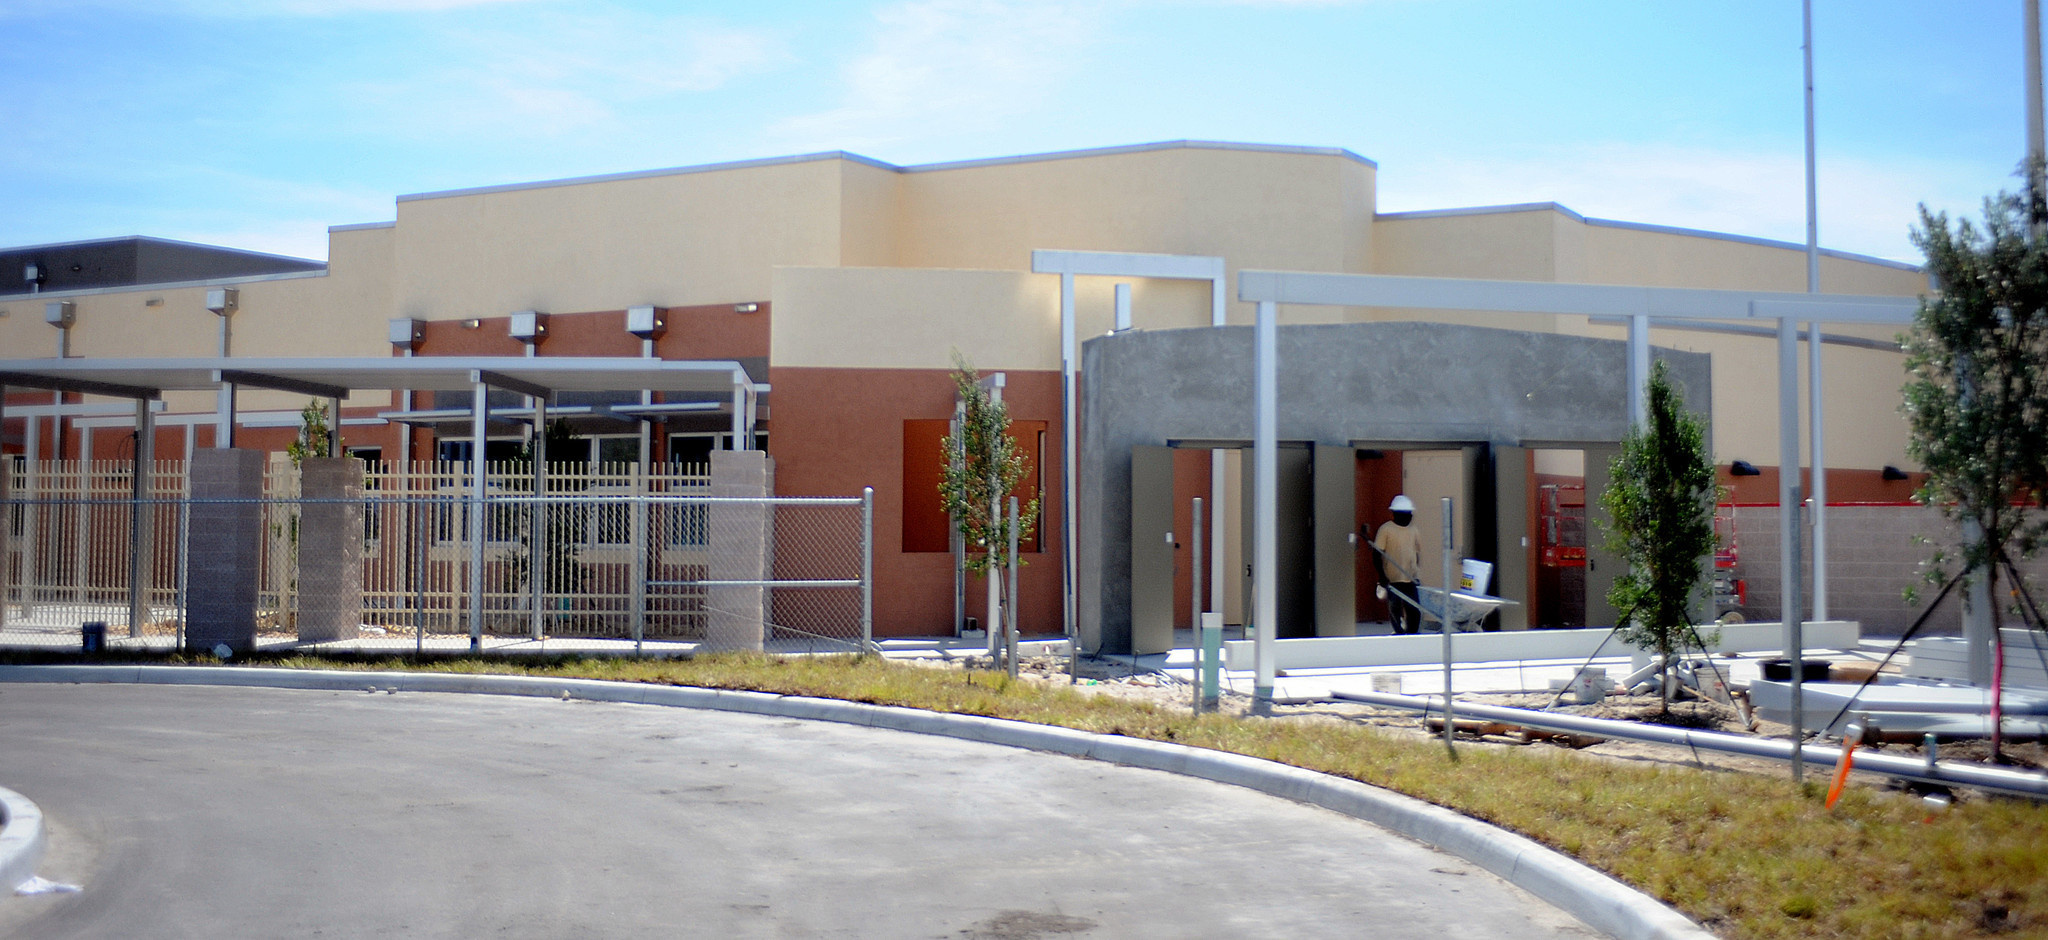 Palm beach county schools cut many projects from capital - Palm beach gardens elementary school ...